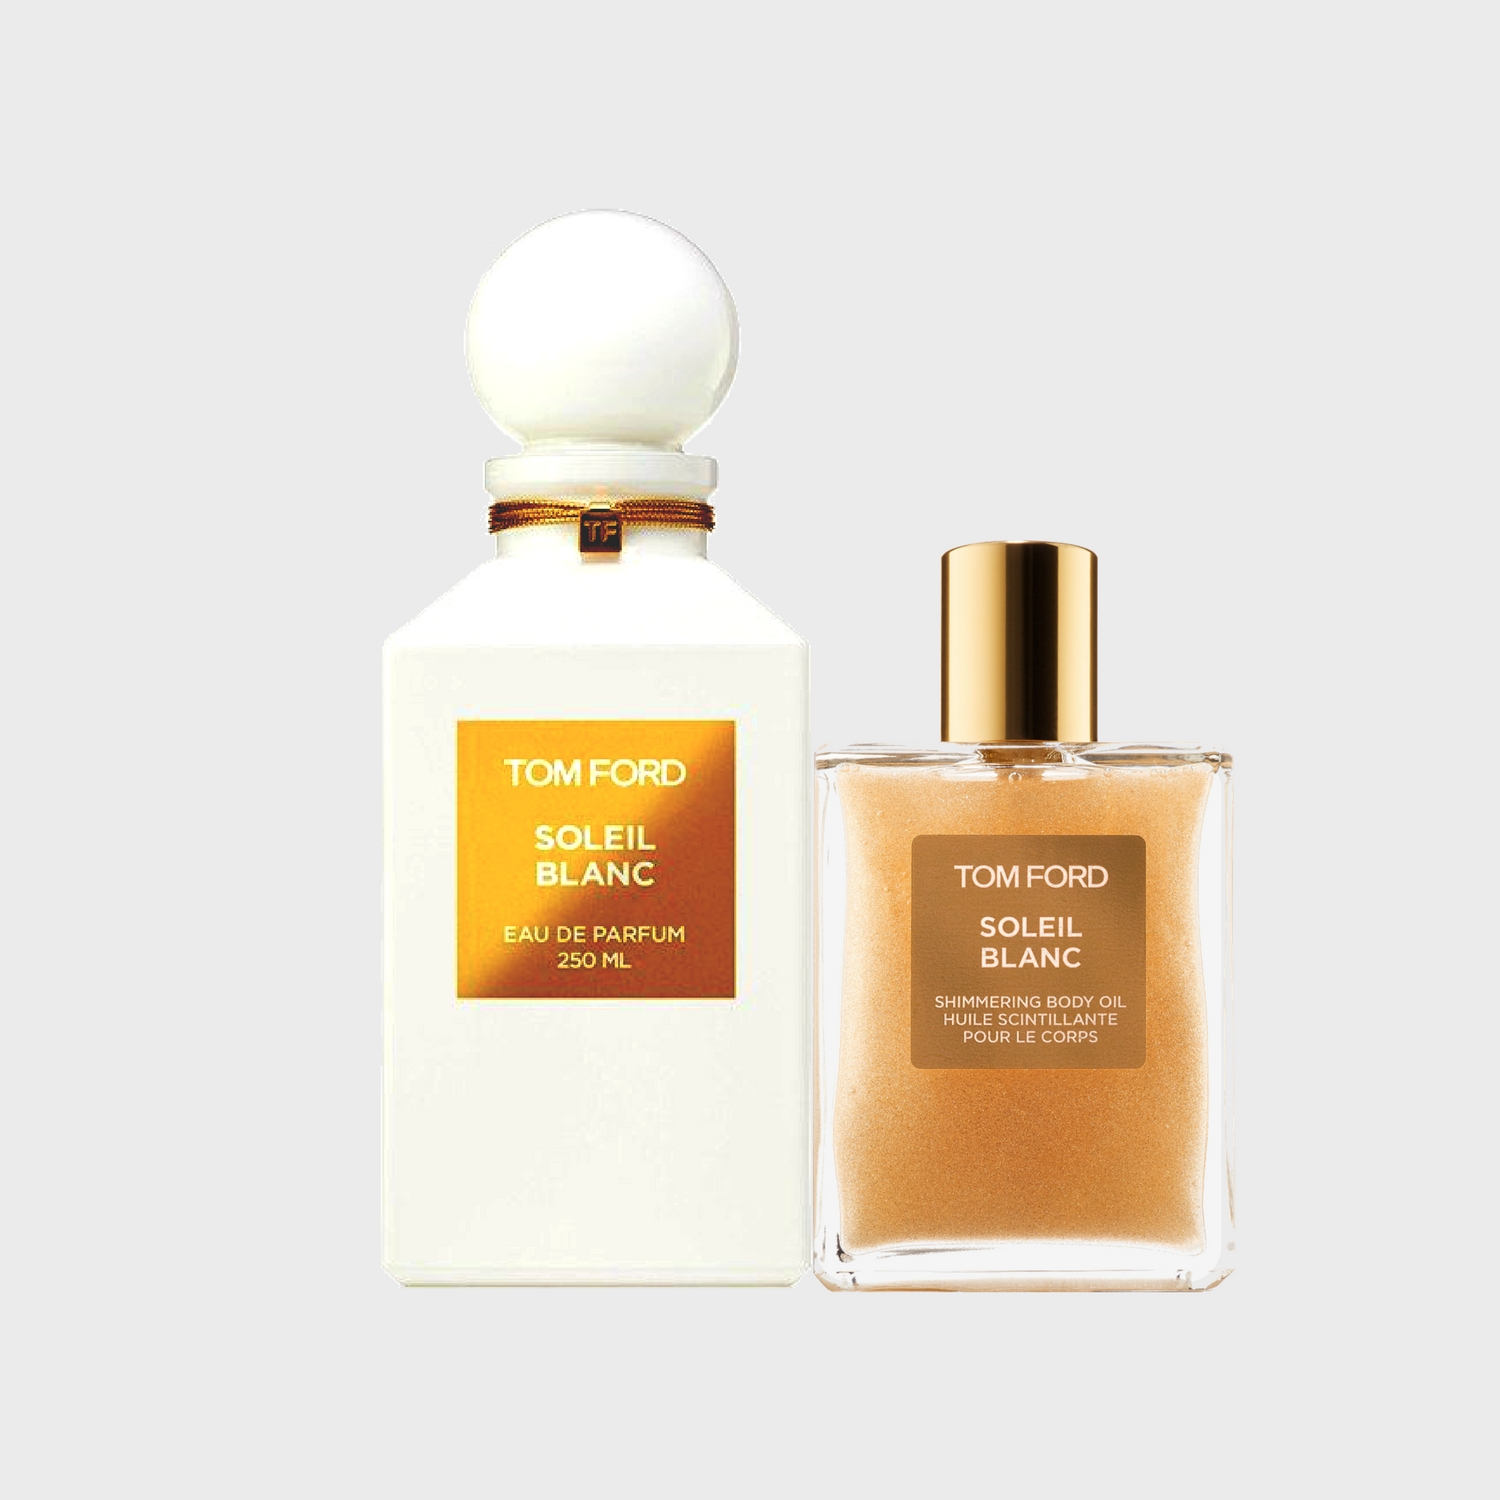 TOM FORD 'SOLEIL BLANC' PERFUME & SHIMMERING BODY OIL PERFUME REVIEW